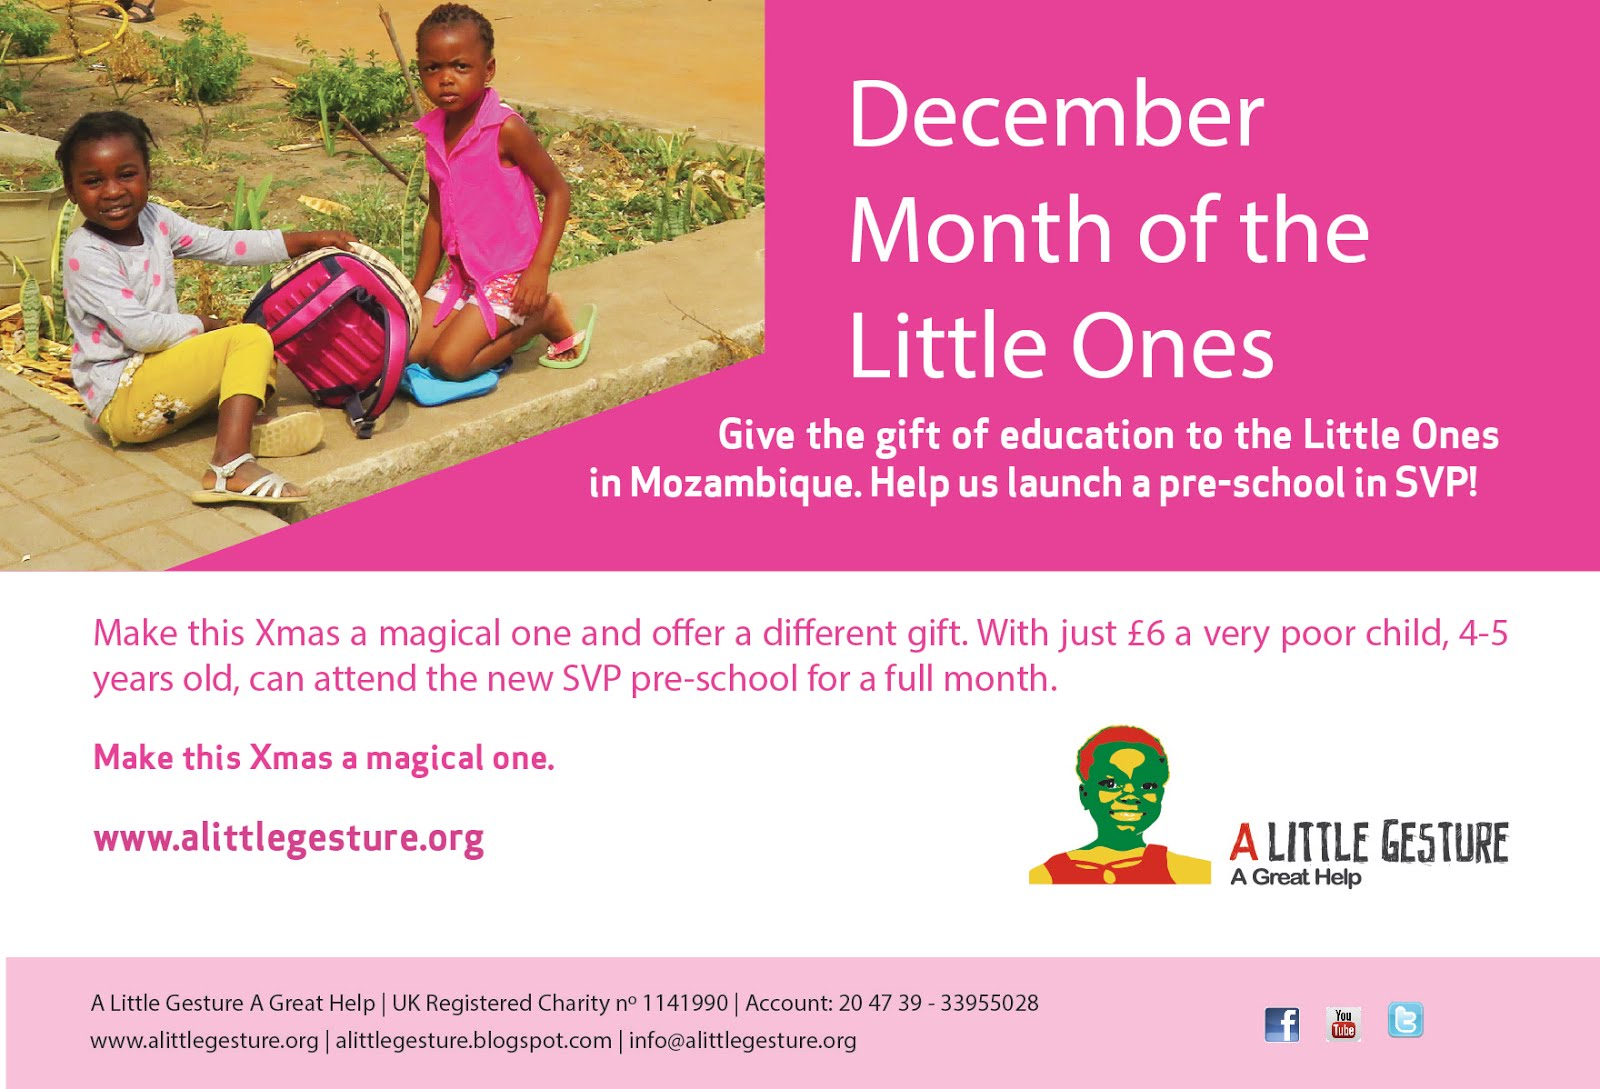 December: Month of the Little Ones!